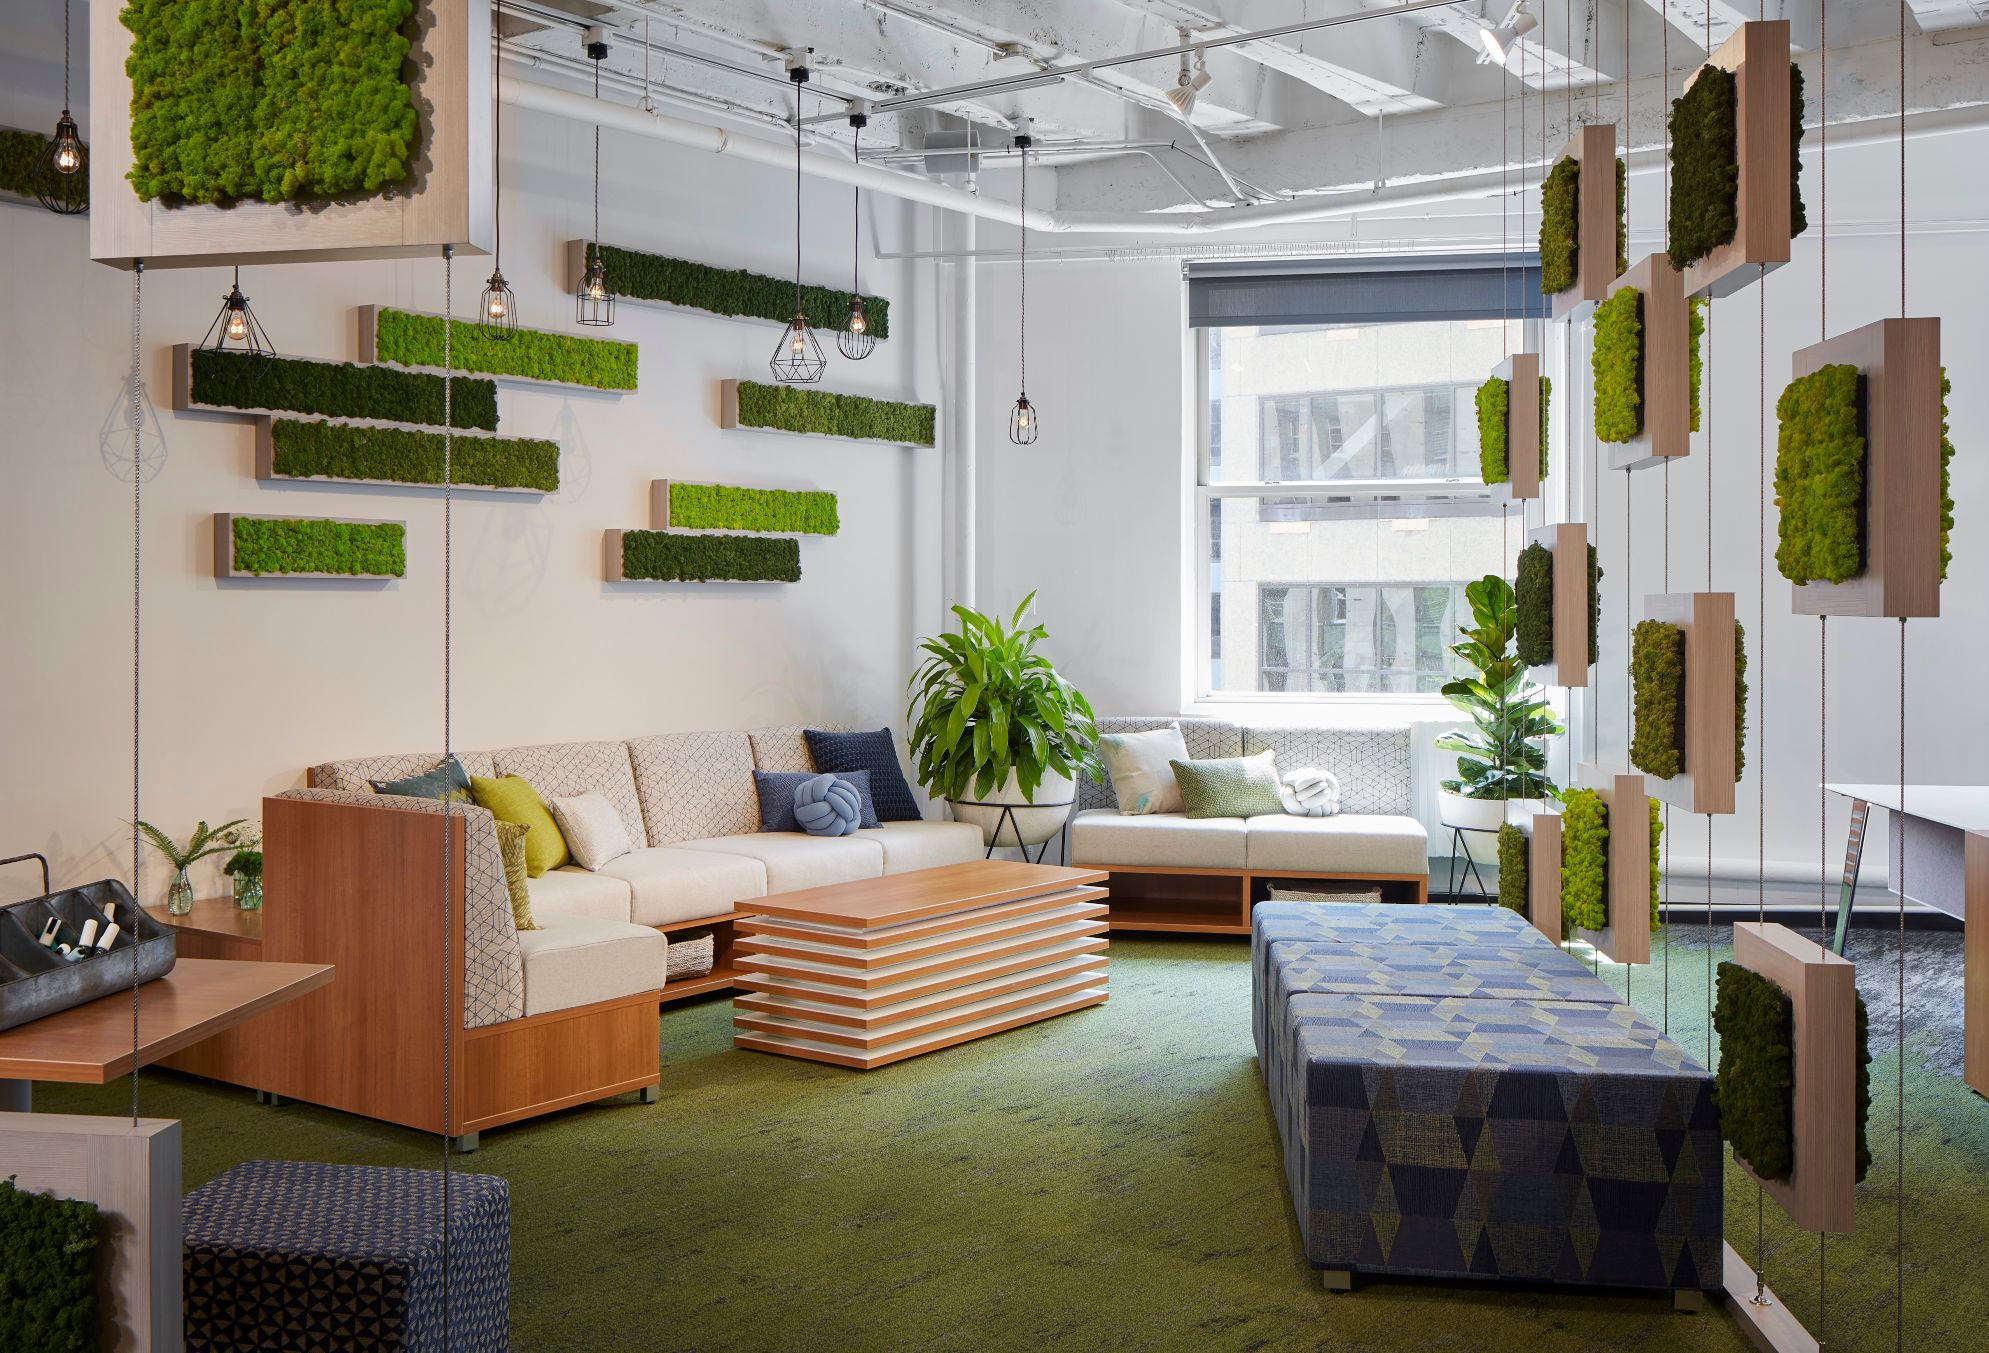 chicago-showroom-at-neocon-2018-with-lb-lounge-seating.-volker-seating-cube-also-shown-in-foreground_md